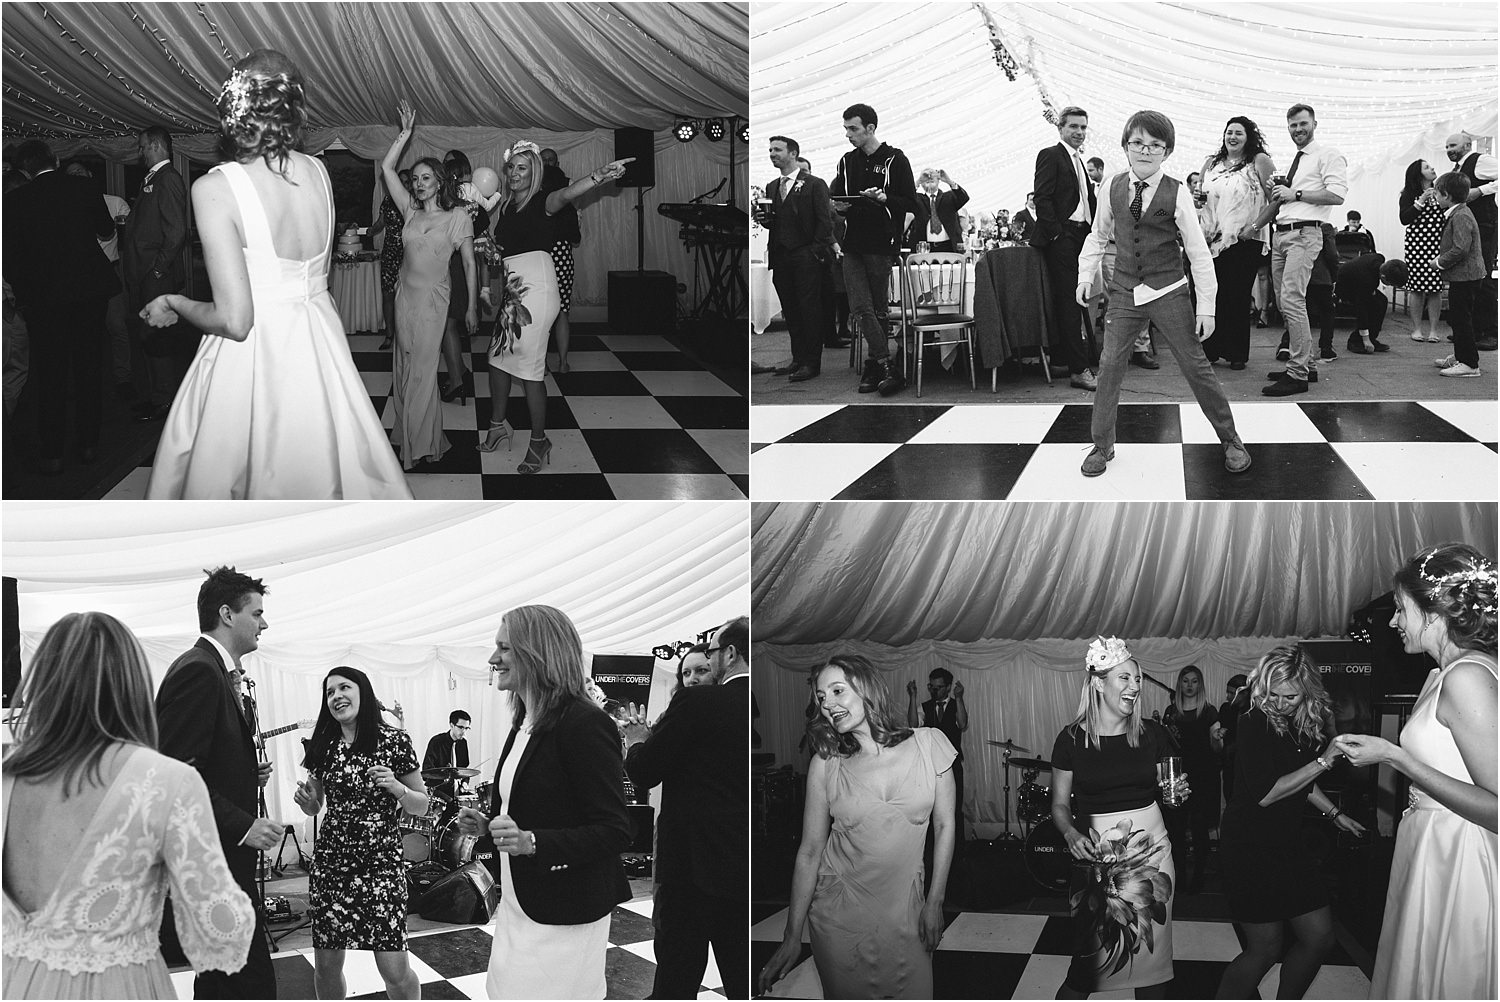 Guests enjoying the dancing at Trough of Bowland wedding reception